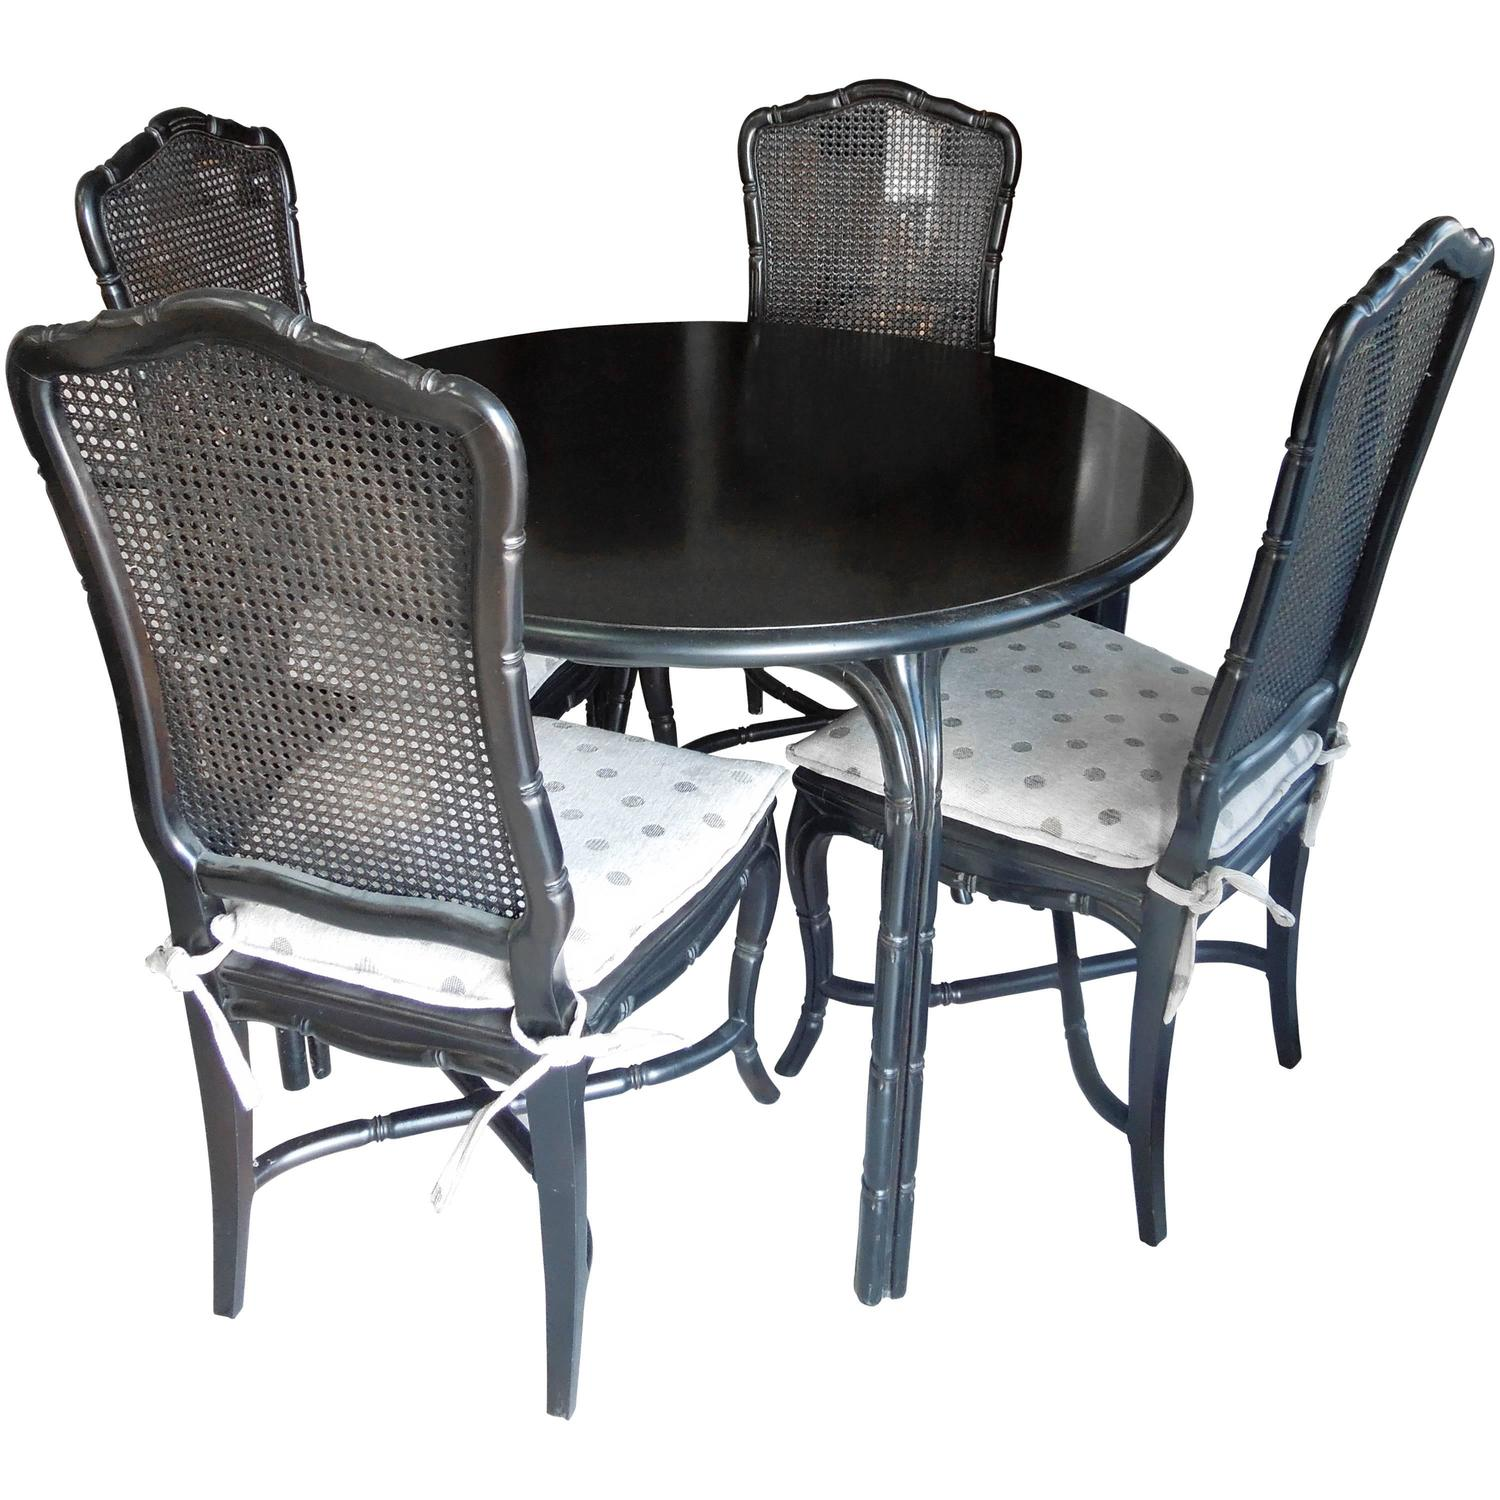 Vintage Hollywood Regency Black Round Dining Or Game Table And Four Chairs Set For Sale At 1stdibs